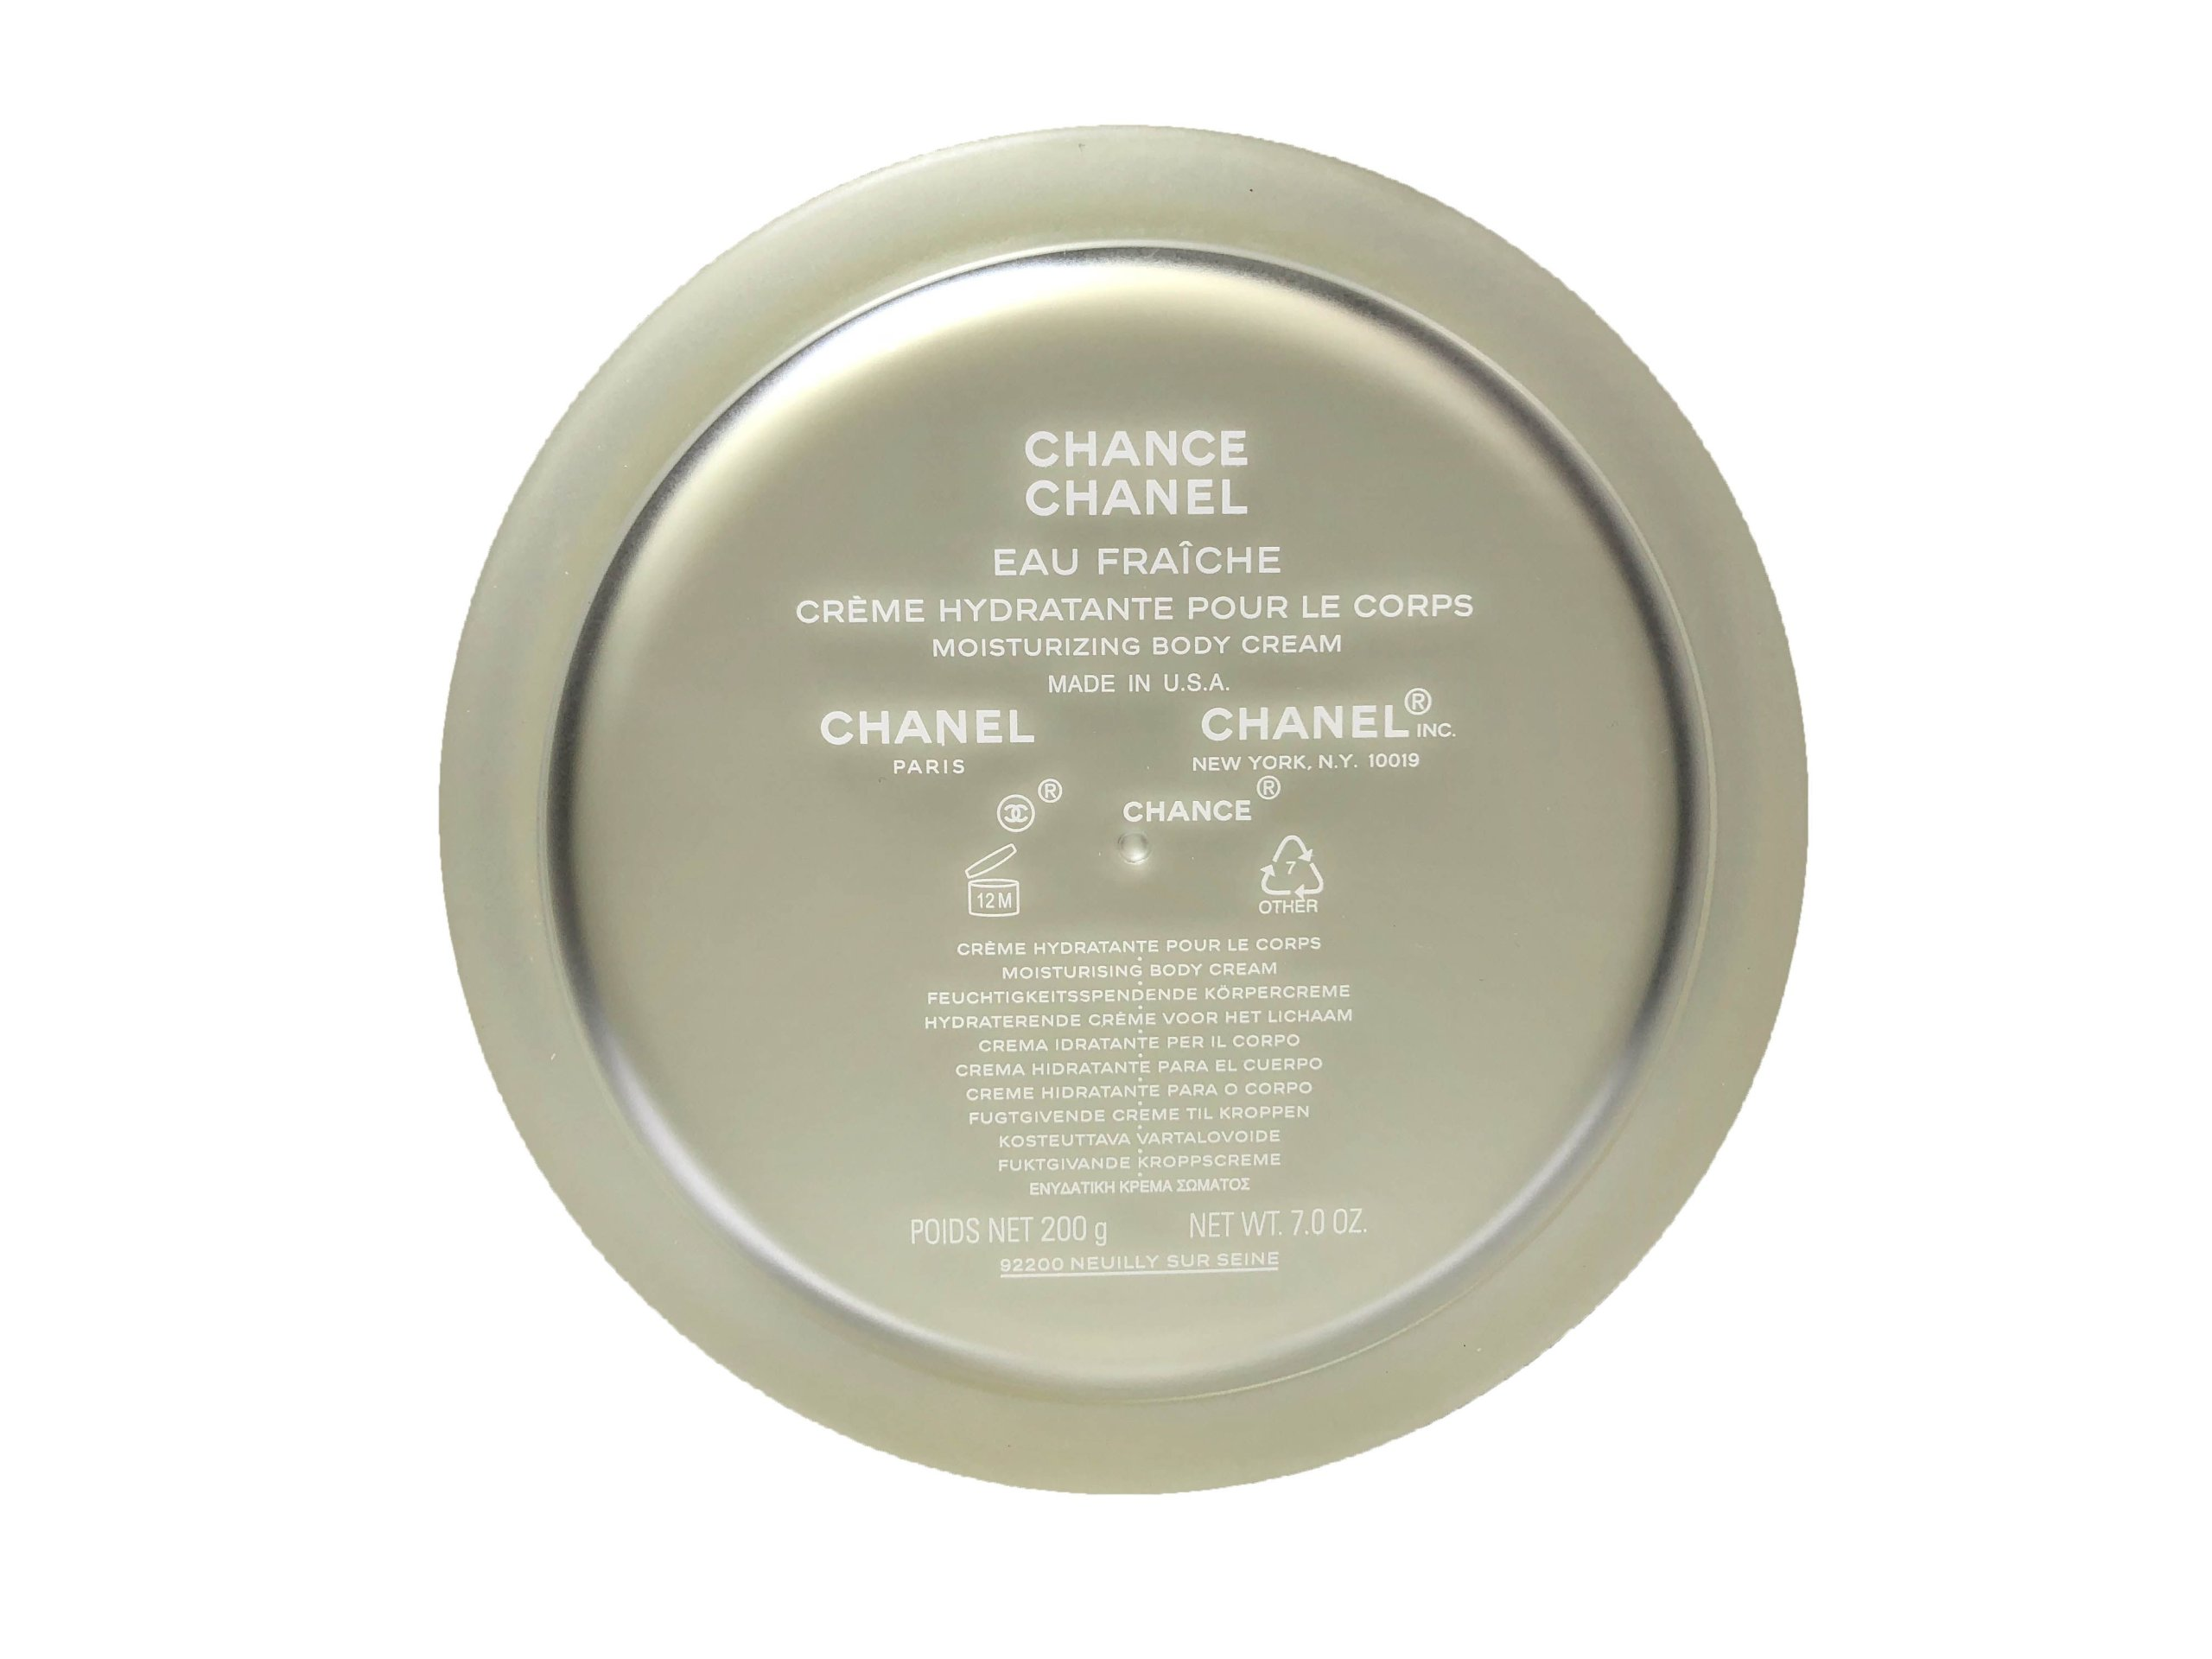 523619b64 CHANEL EAU FRAICHE BODY CREAM 200ML jp - 7673828217 - oficjalne ...